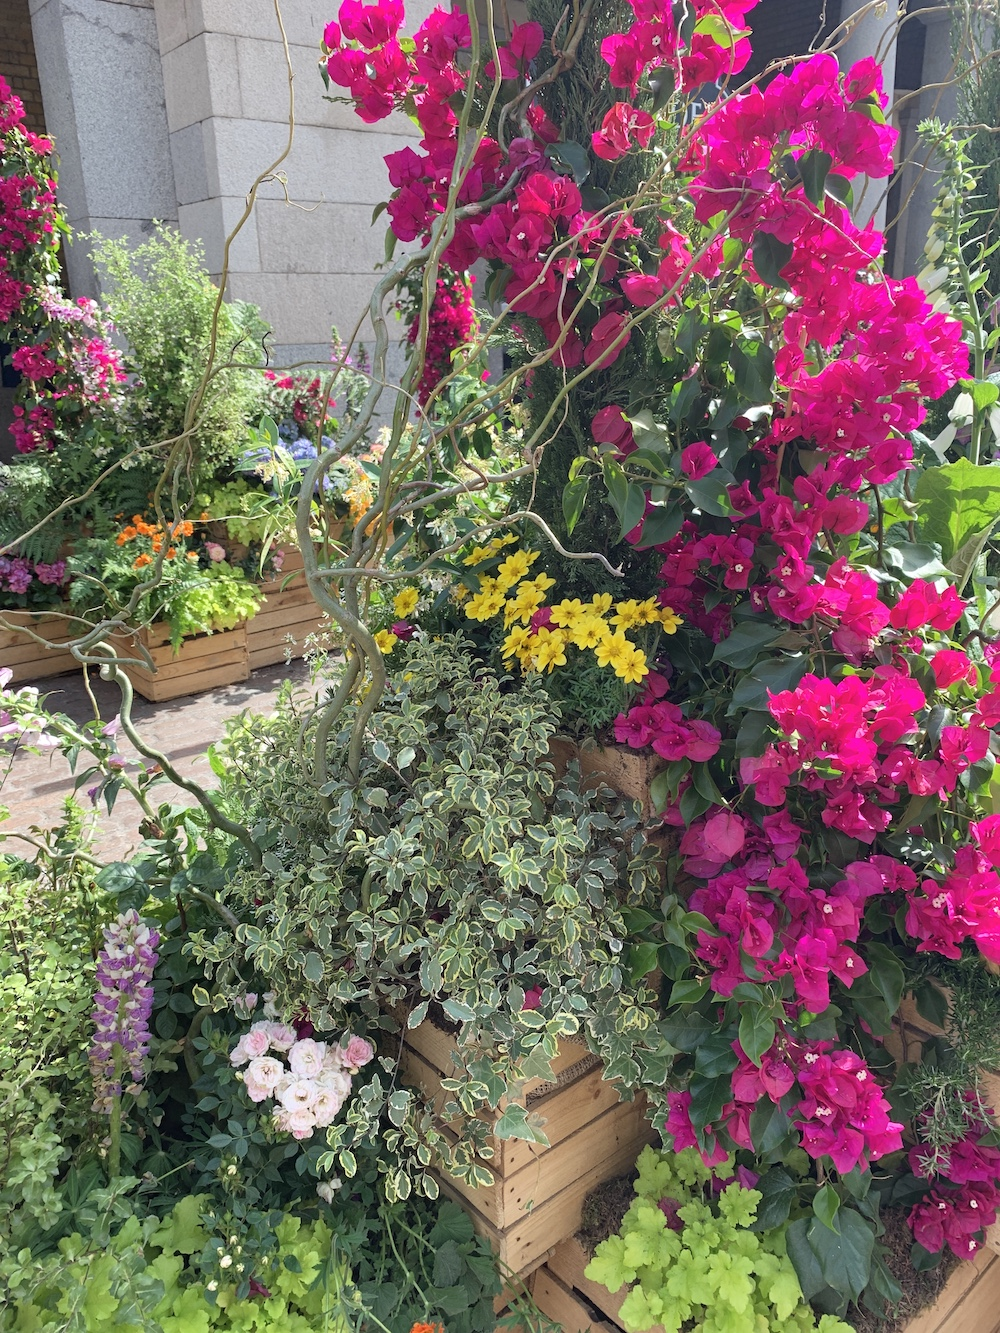 Crate Gardening for Small Spaces Bougainvillea Vine #Garden #Gardening #SmallSpace #SmallSpaceGardening #ContainerGardening #FlowerGarden #PorchGarden #PatioGarden